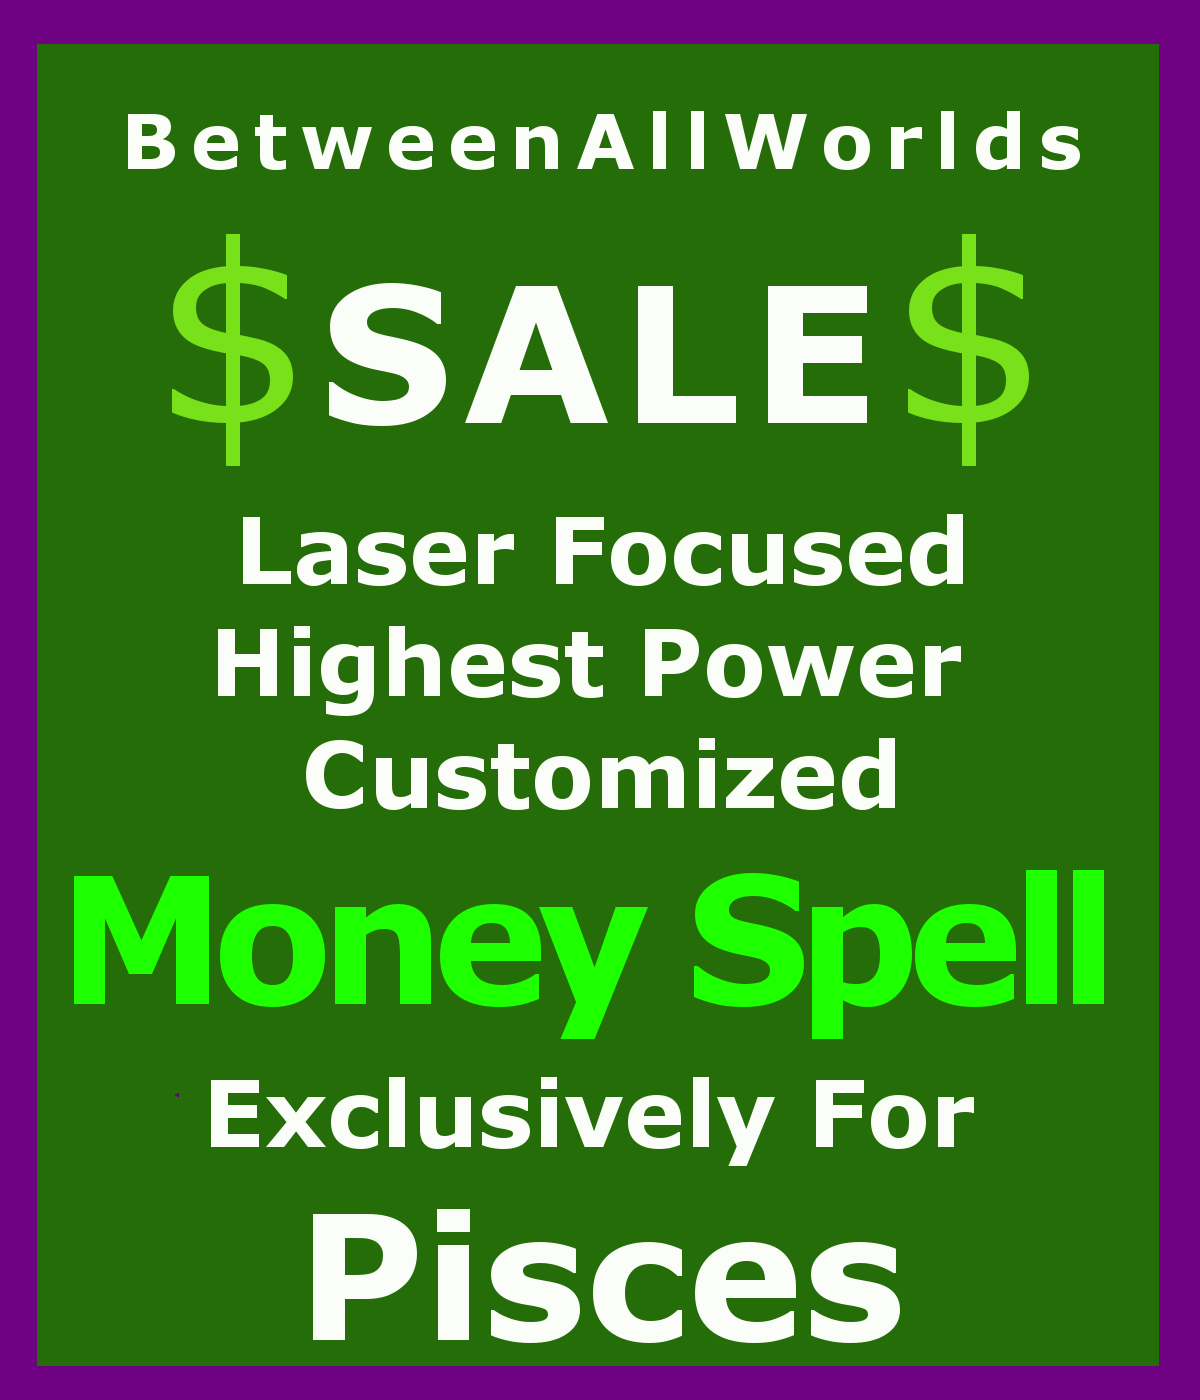 Primary image for kvm Sale Wealth Spell Billionaire Customized Magick 4 Pisces Betweenallworlds